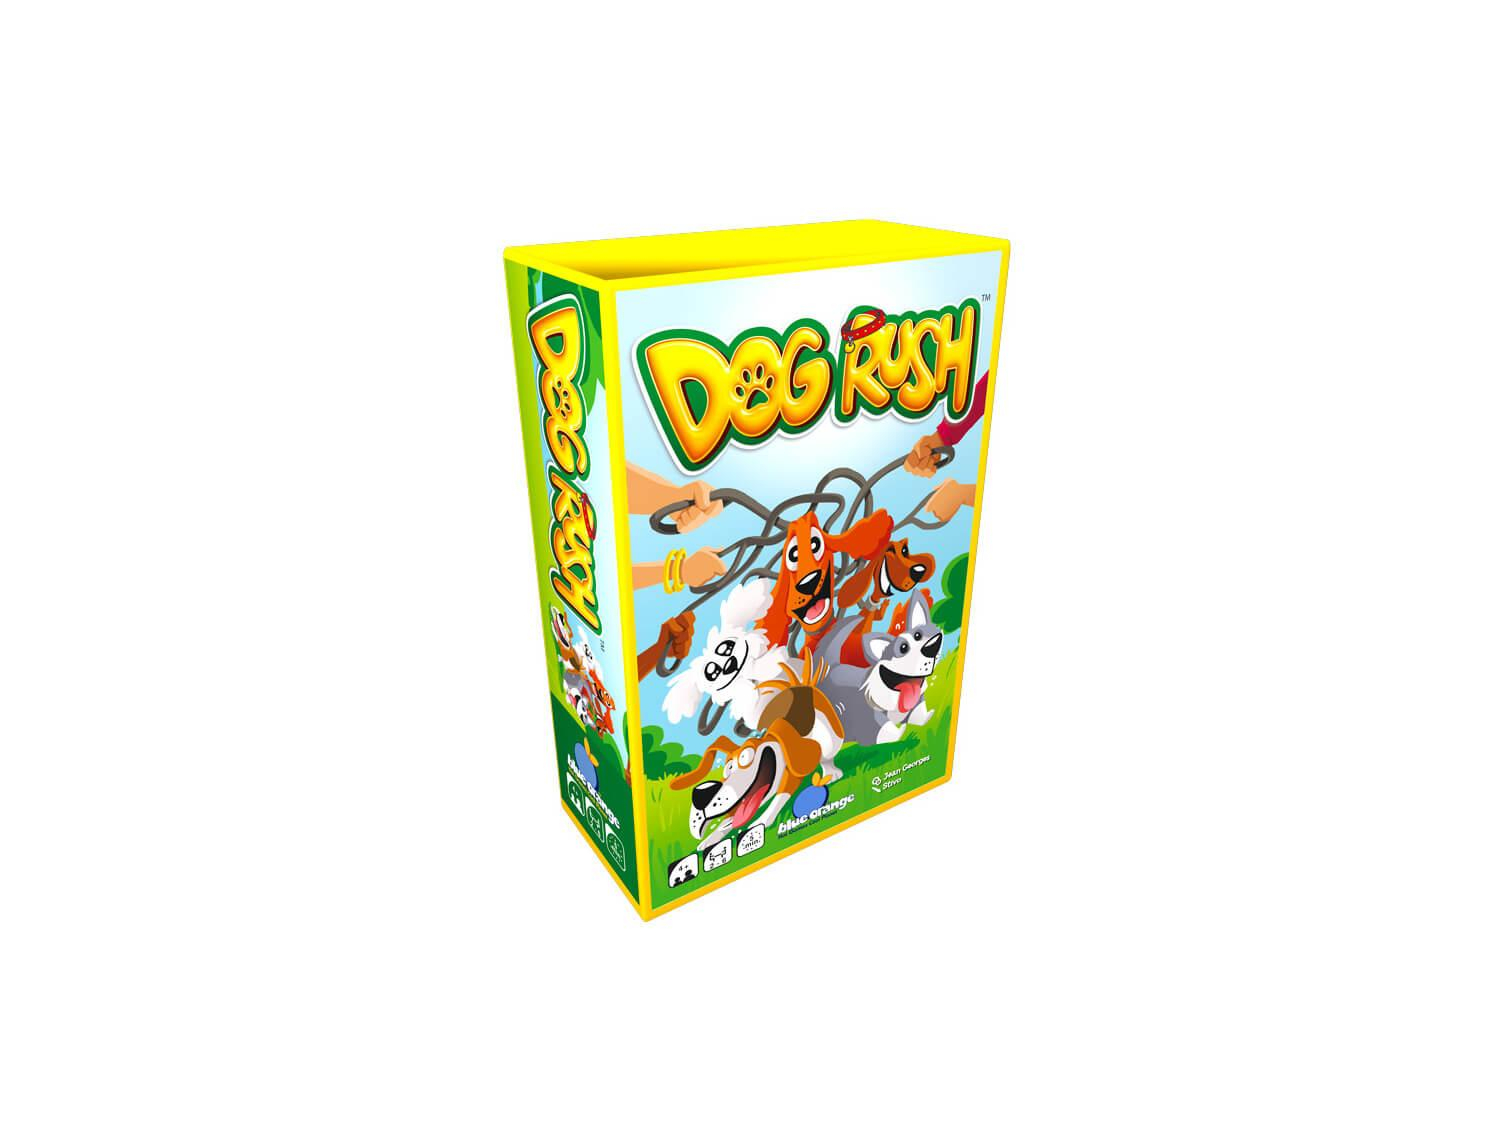 Dog Rush 3D Box